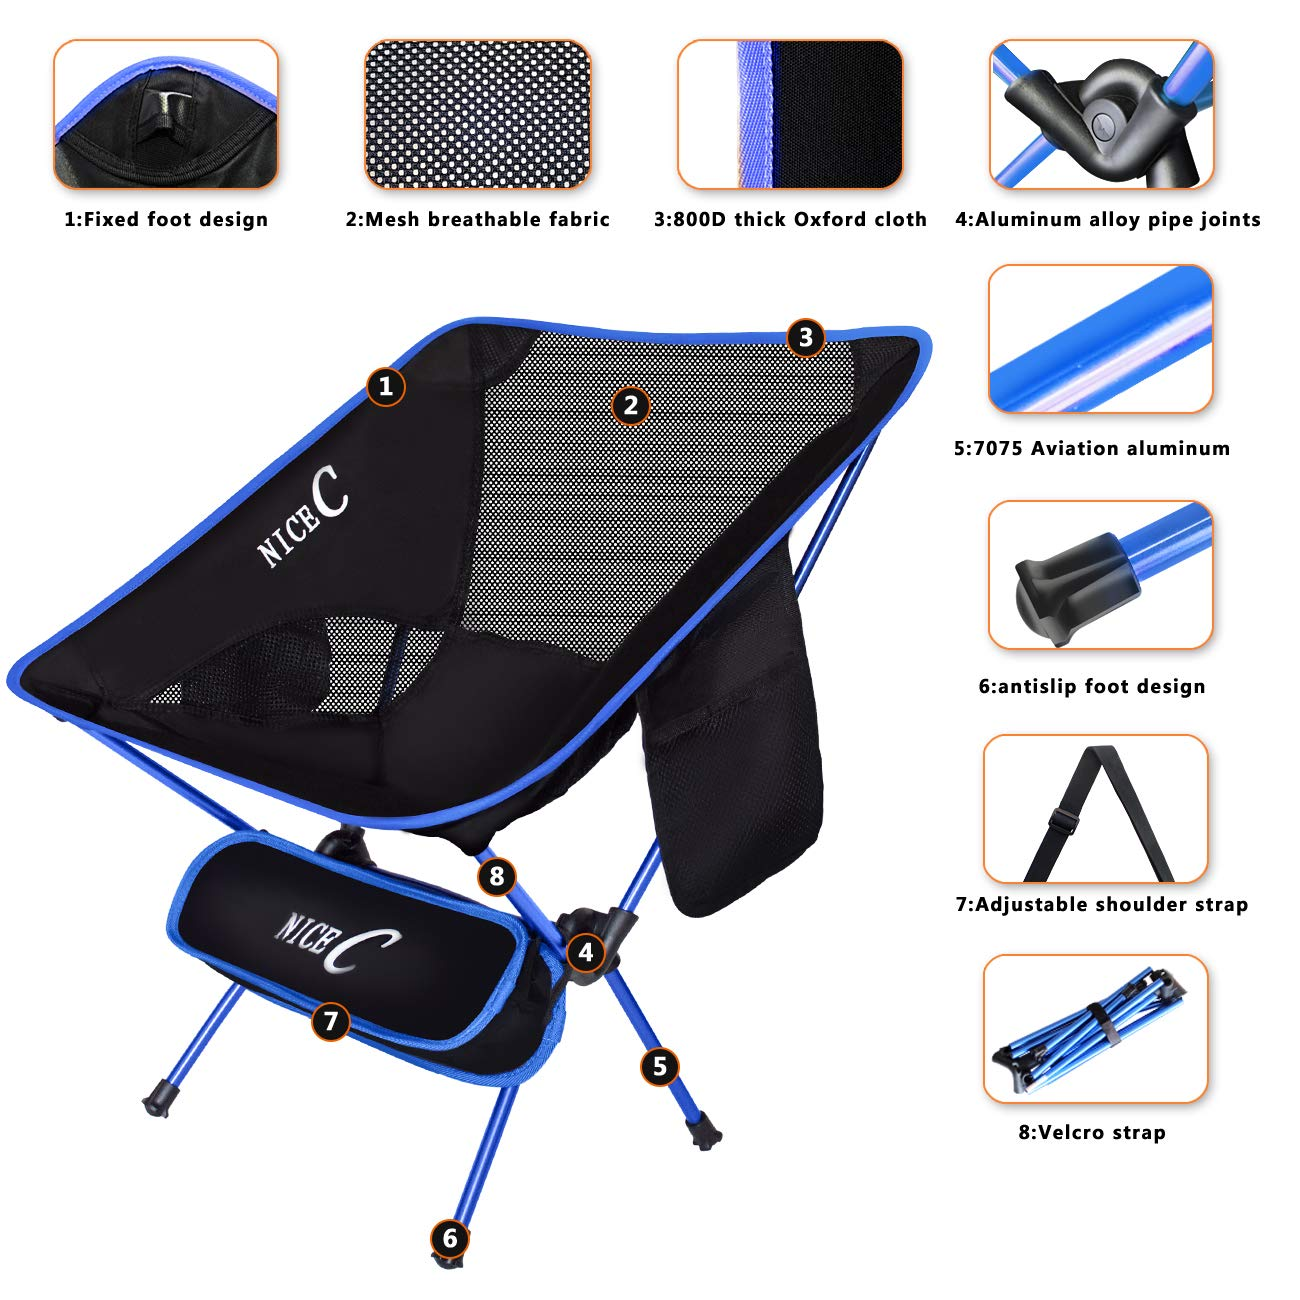 NiceC Ultralight Portable Folding Camping Backpacking Chair Compact Heavy Duty Outdoor, Camping, BBQ, Beach, Travel, Picnic, Festival with 2 Storage Bags Carry Bag